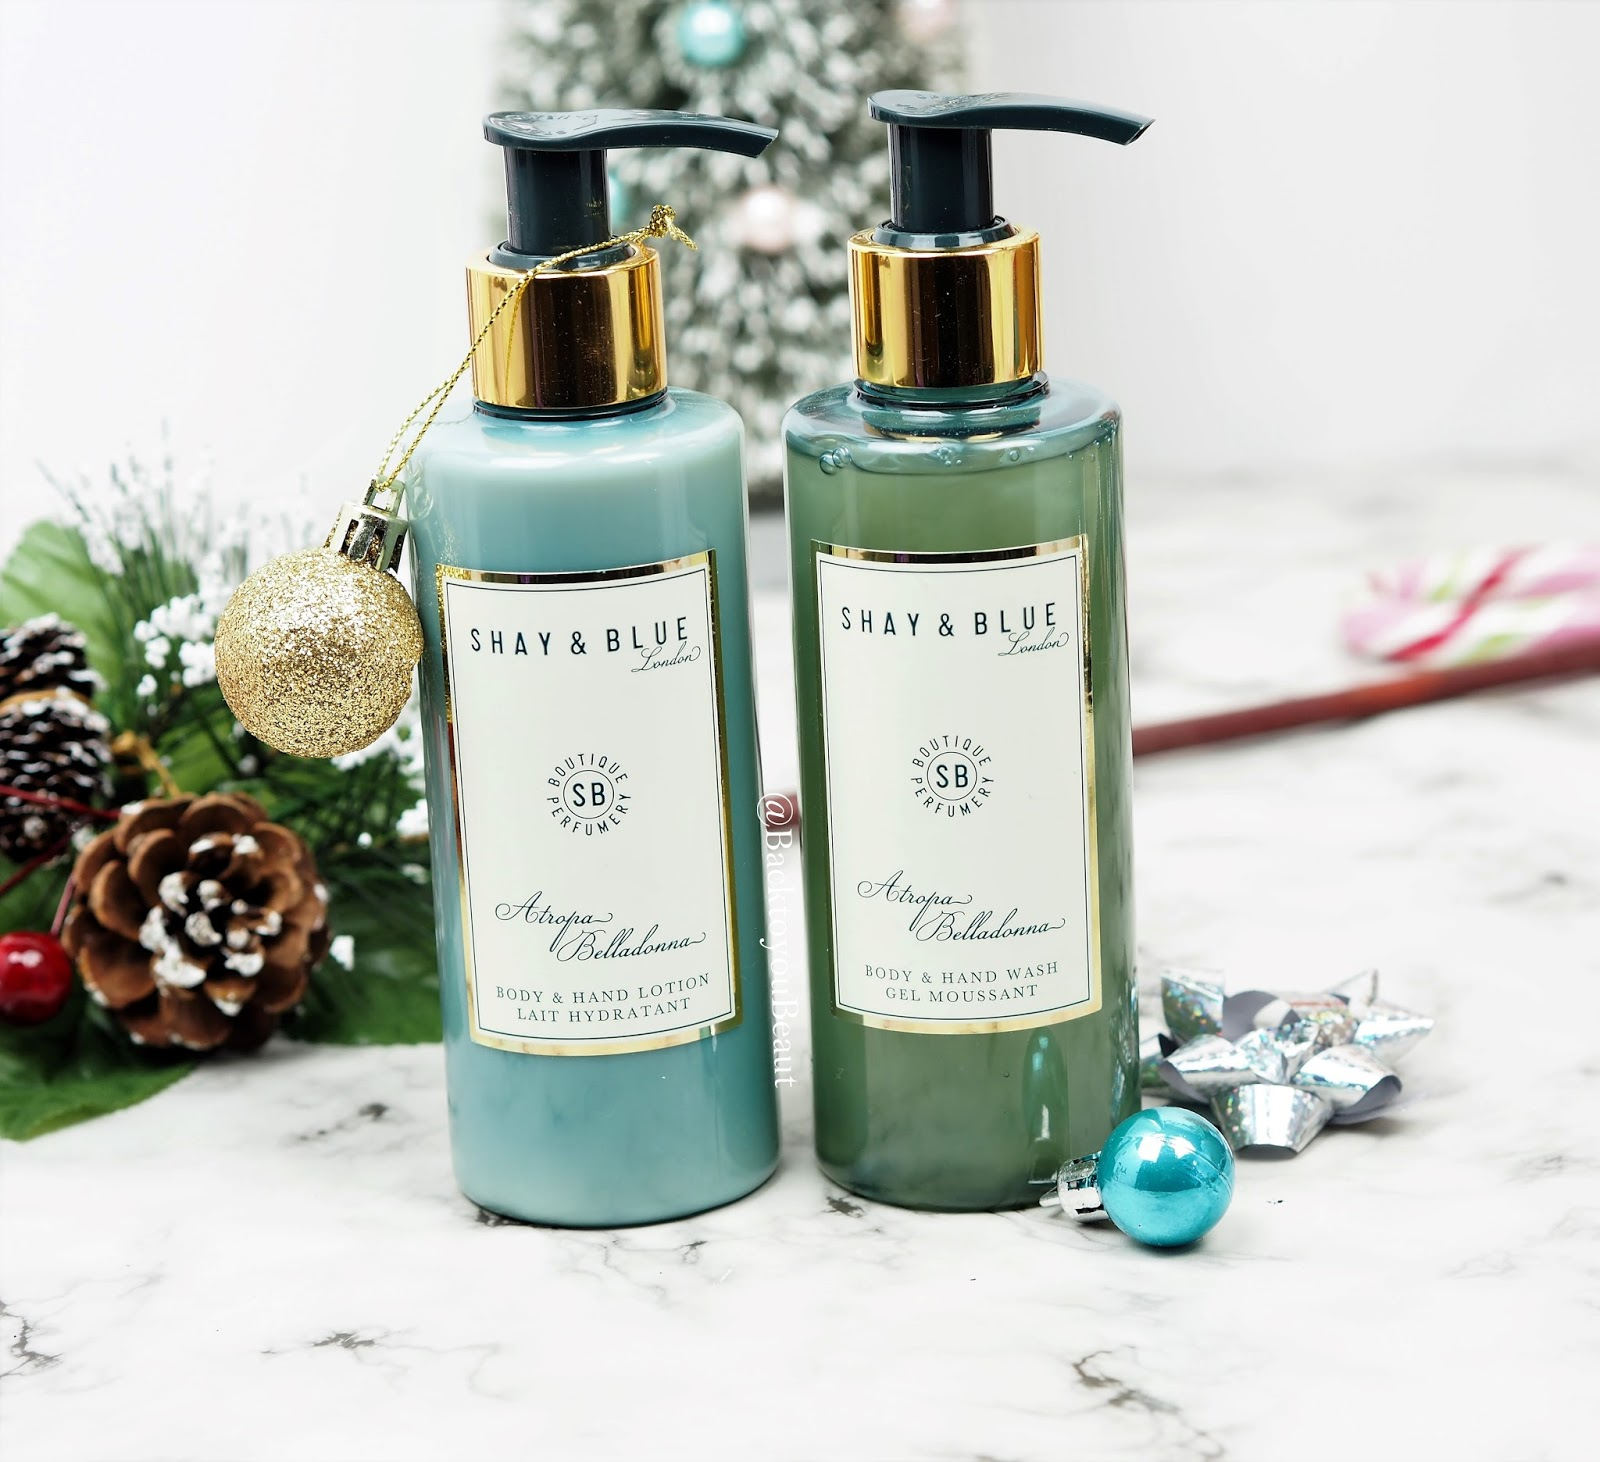 Shay & Blue Atropa Belladonna Handwash and Handlotion duo